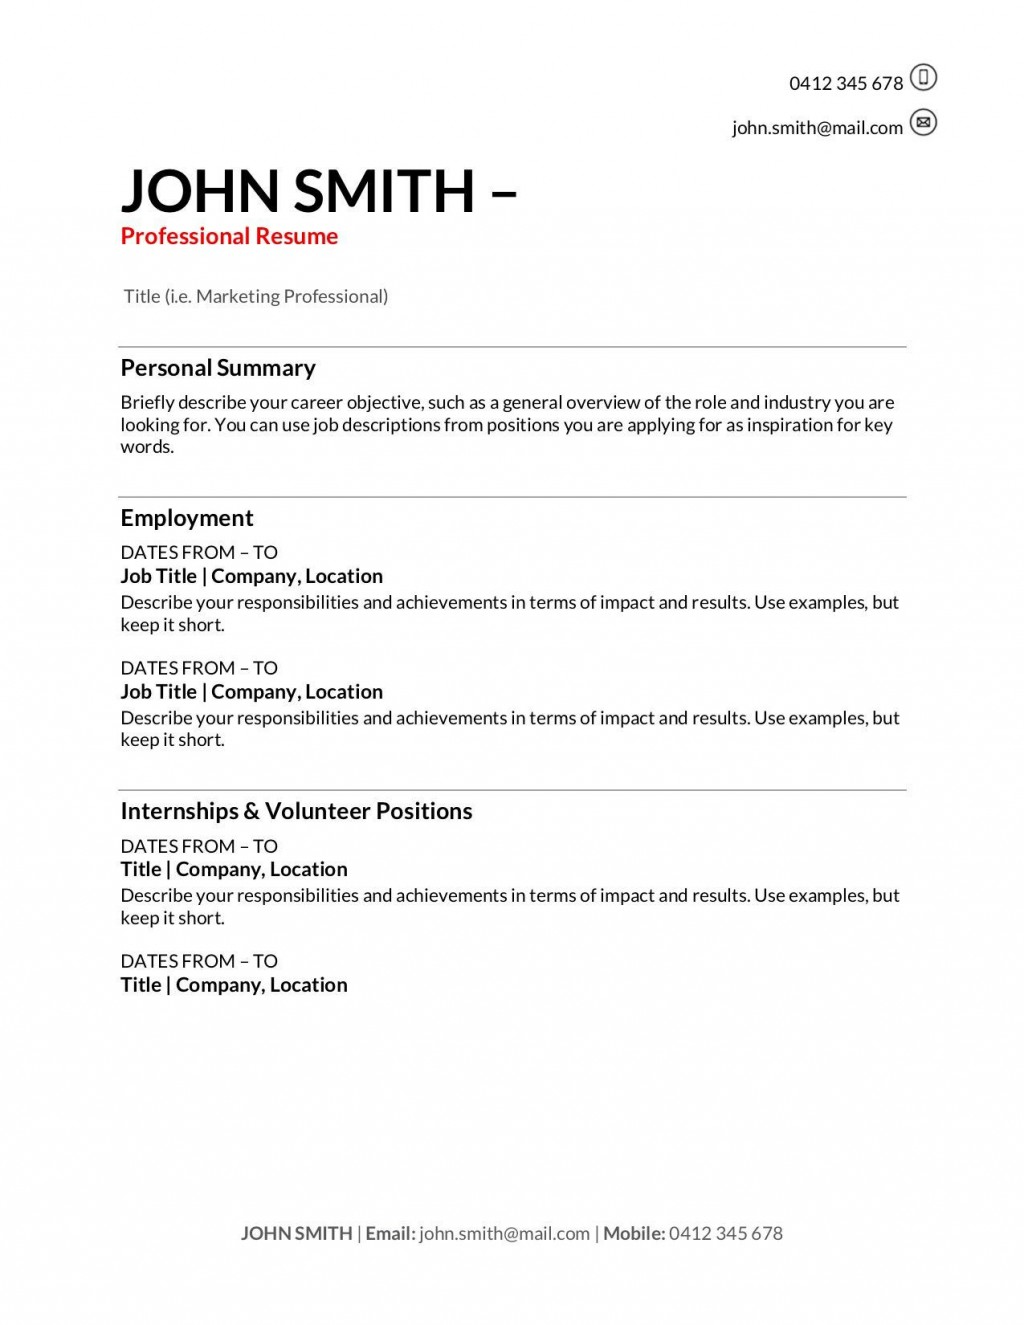 006 Impressive Resume Template For First Job High Def  After College Sample Student TeenagerLarge